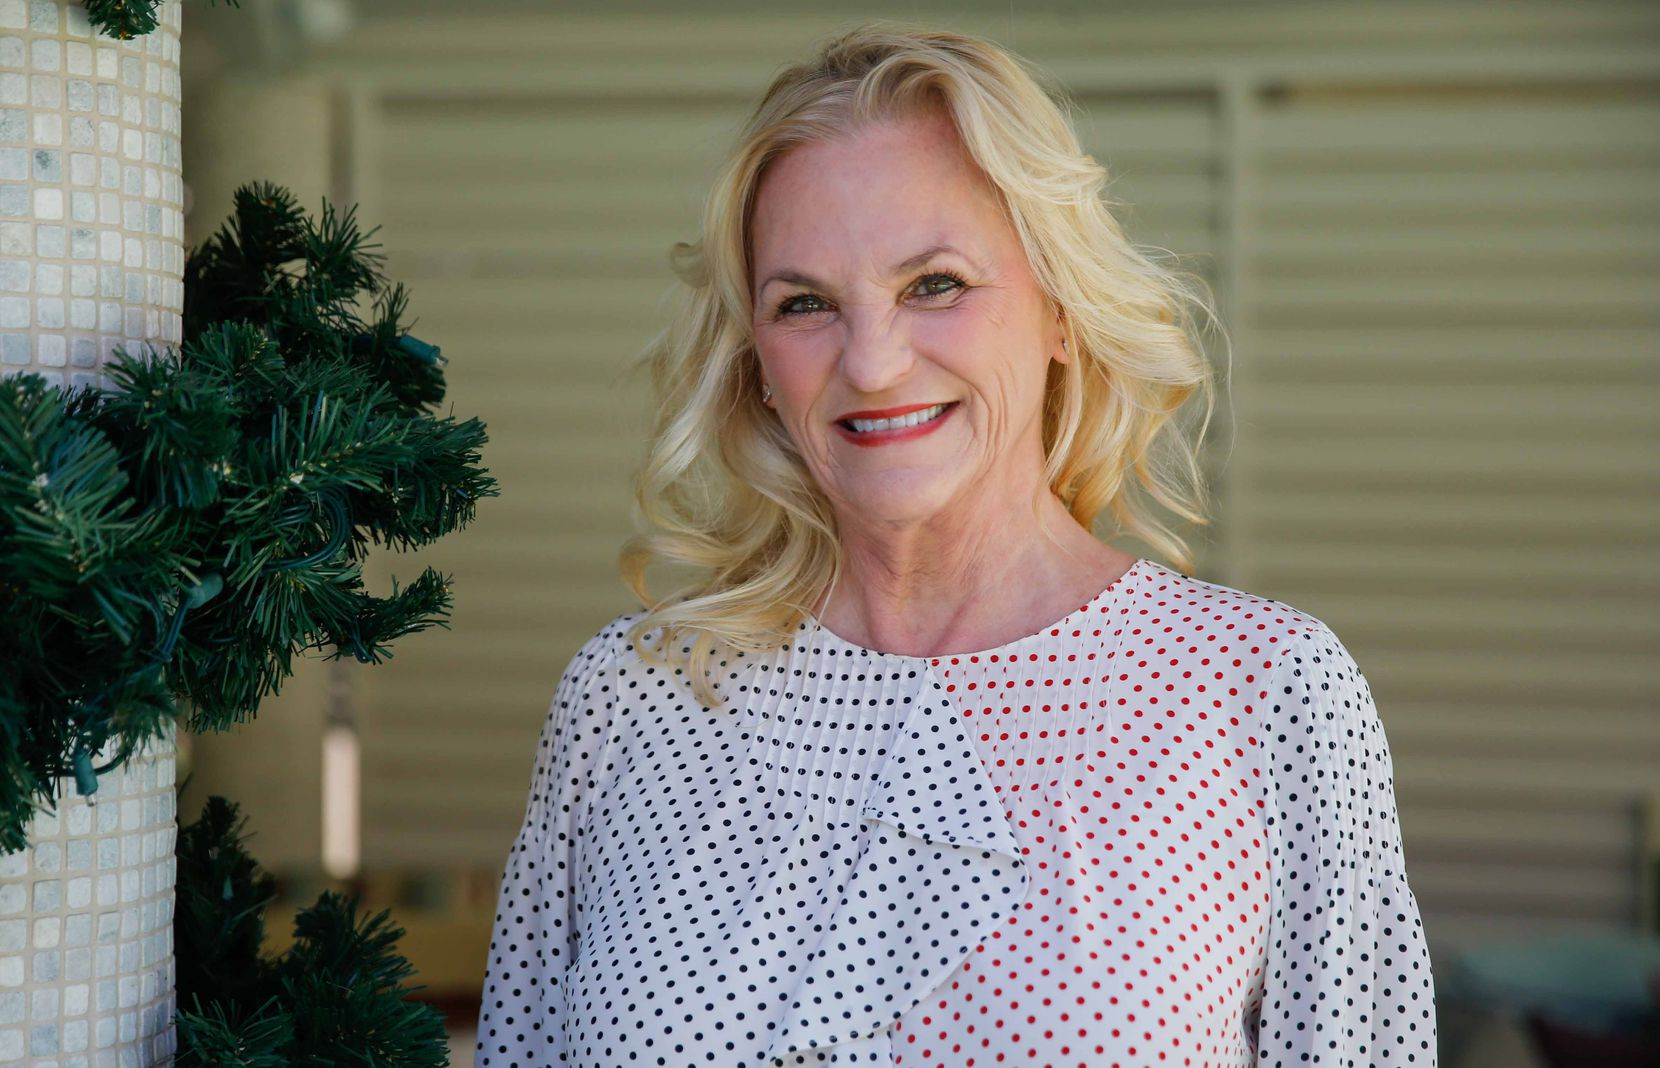 Melissa Reiff, CEO of The Container Store, poses at her home in Dallas on Dec. 9.